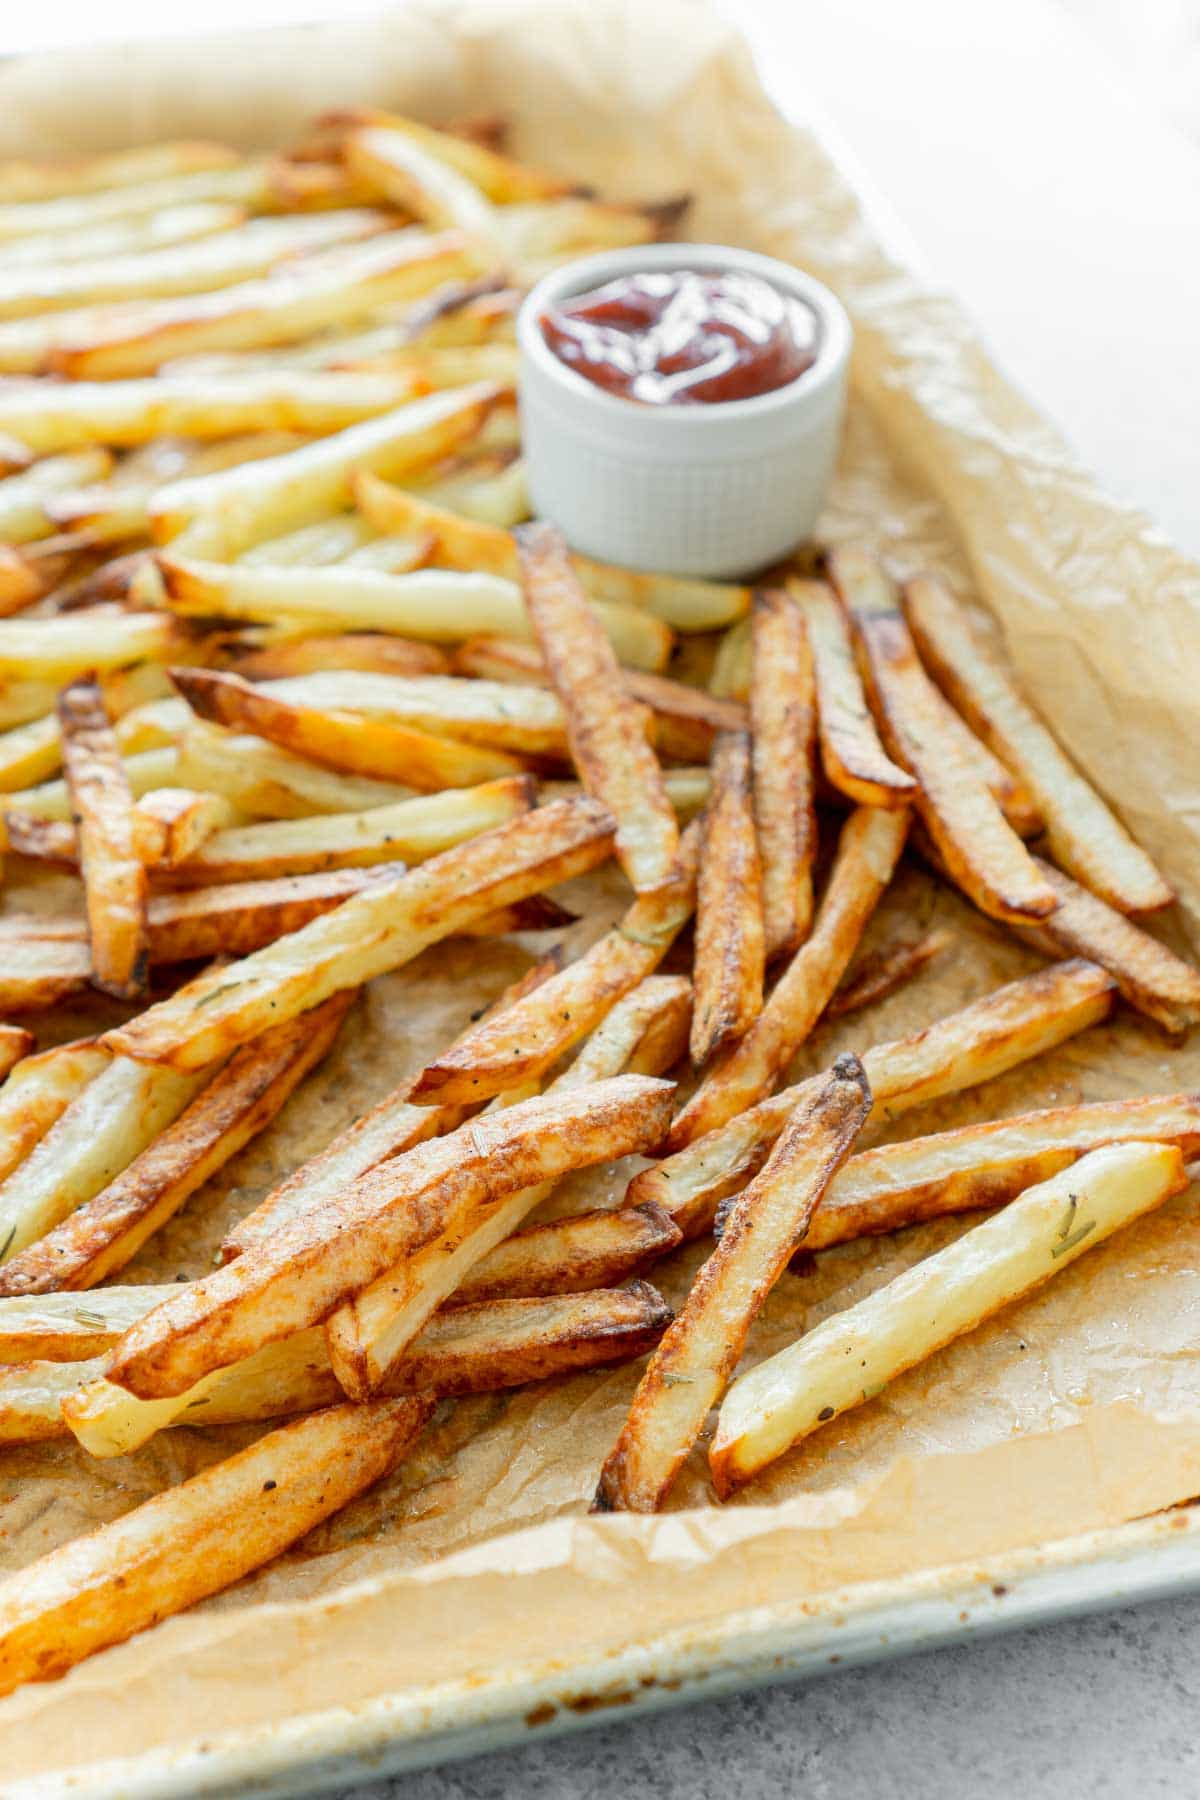 Pile of homemade fryer french fries on a baking sheet with parchment paper